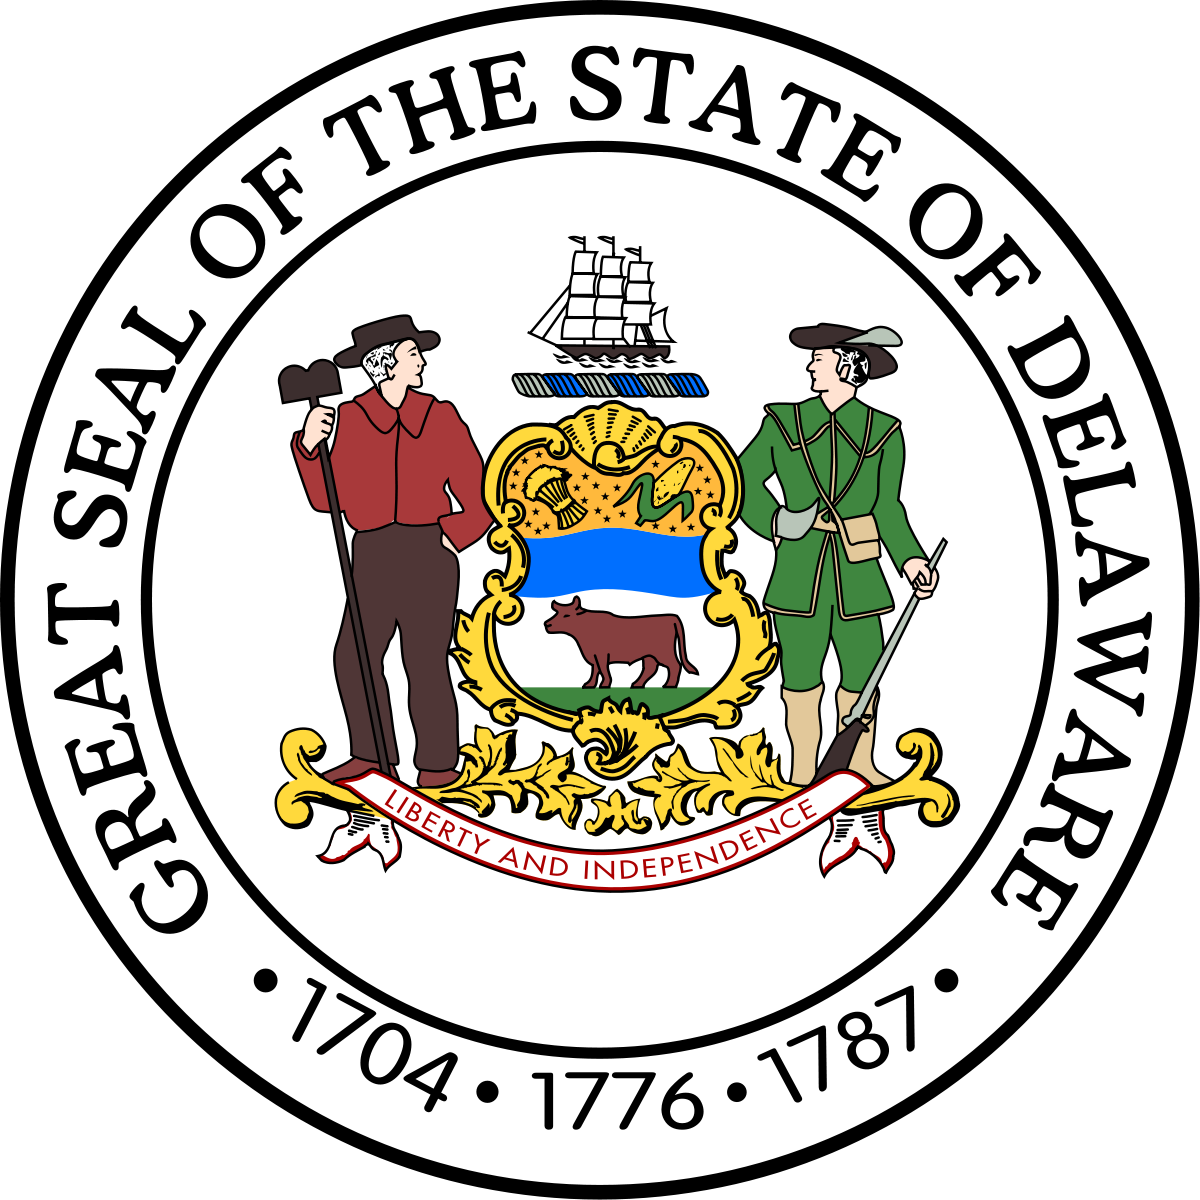 graphic transparent Delaware s th state. Washington dc clipart house rep